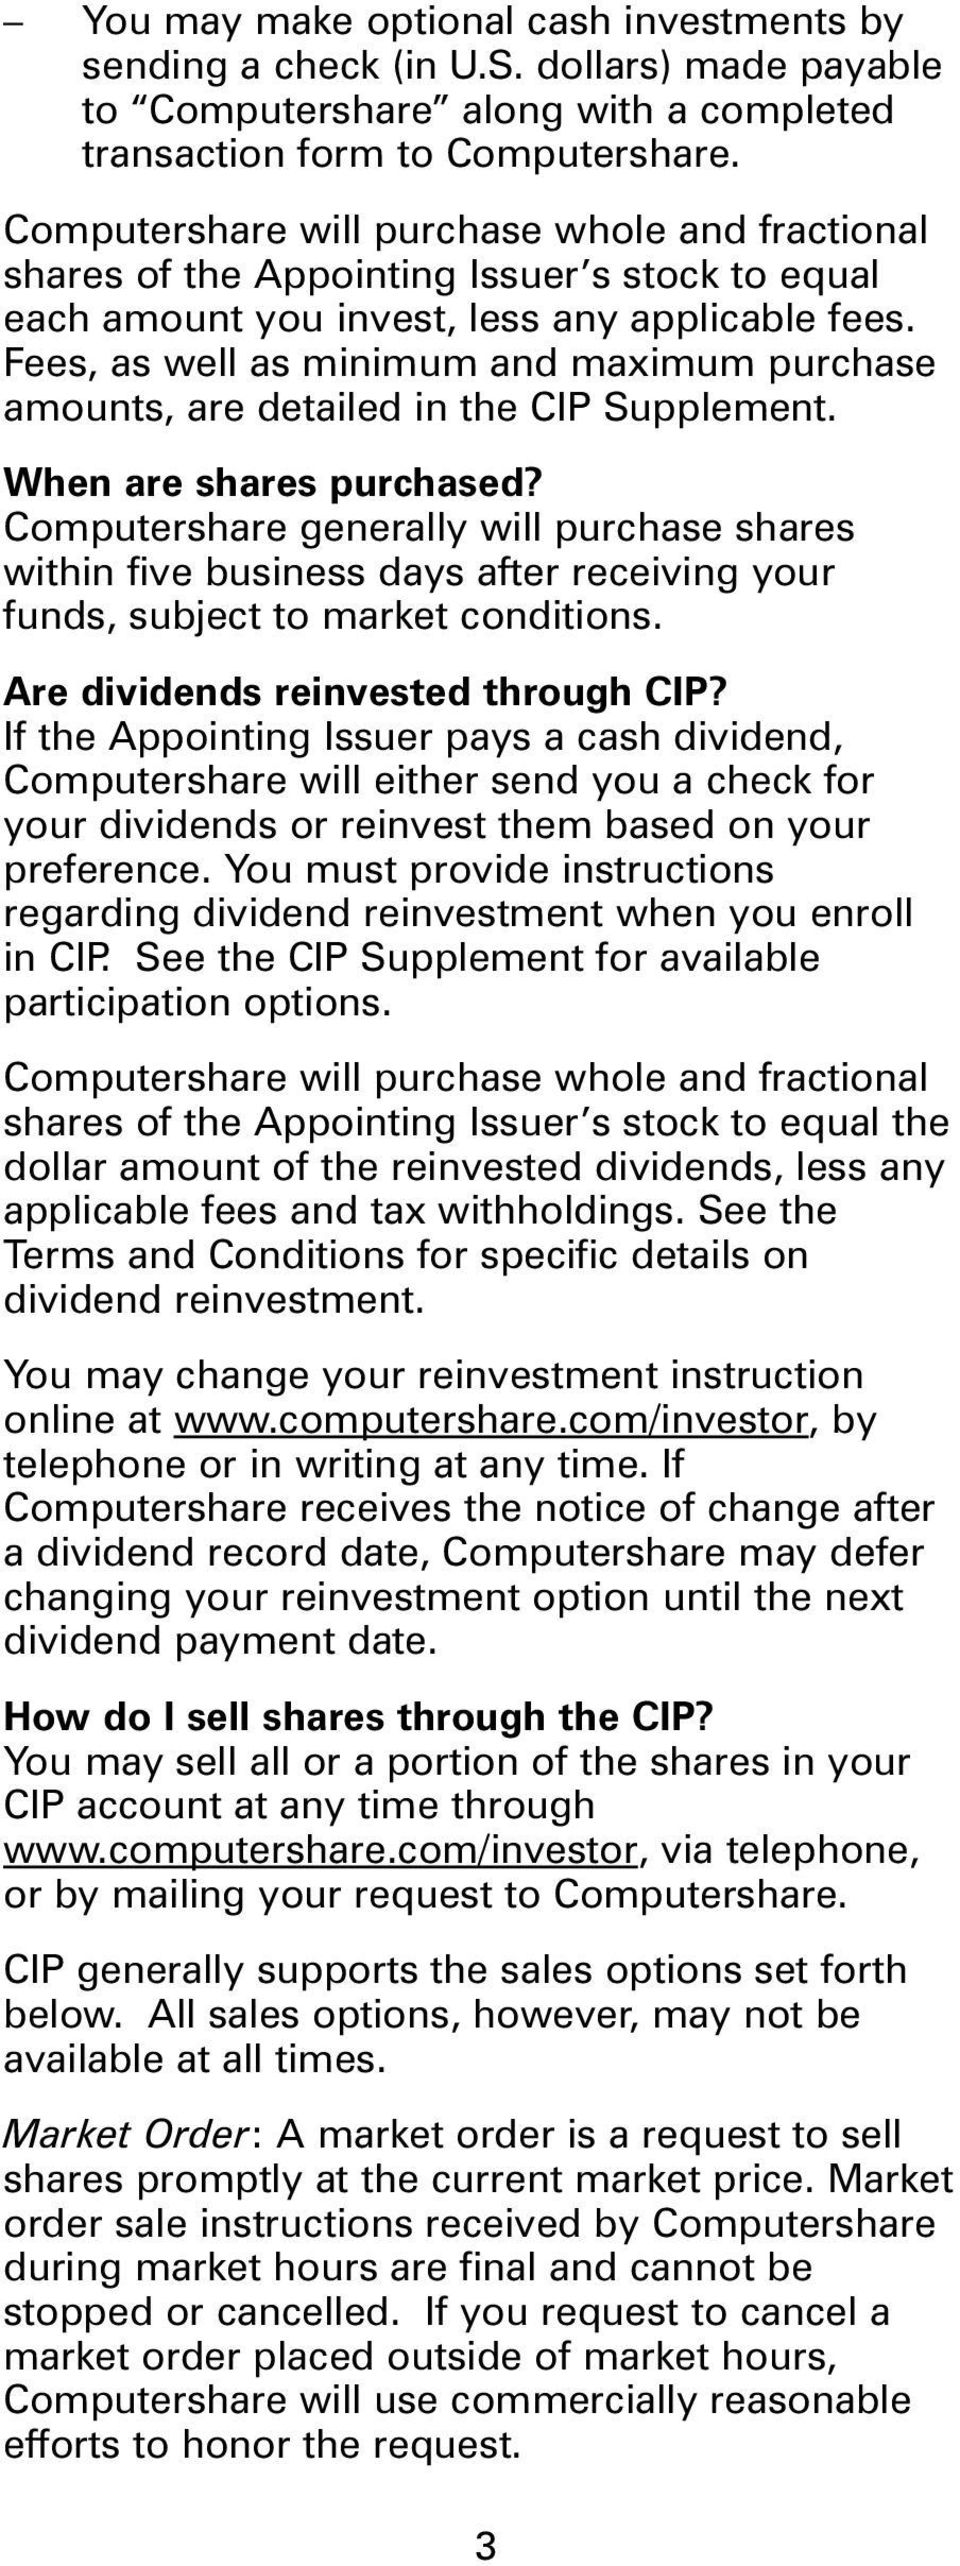 Fees, as well as minimum and maximum purchase amounts, are detailed in the CIP Supplement. When are shares purchased?